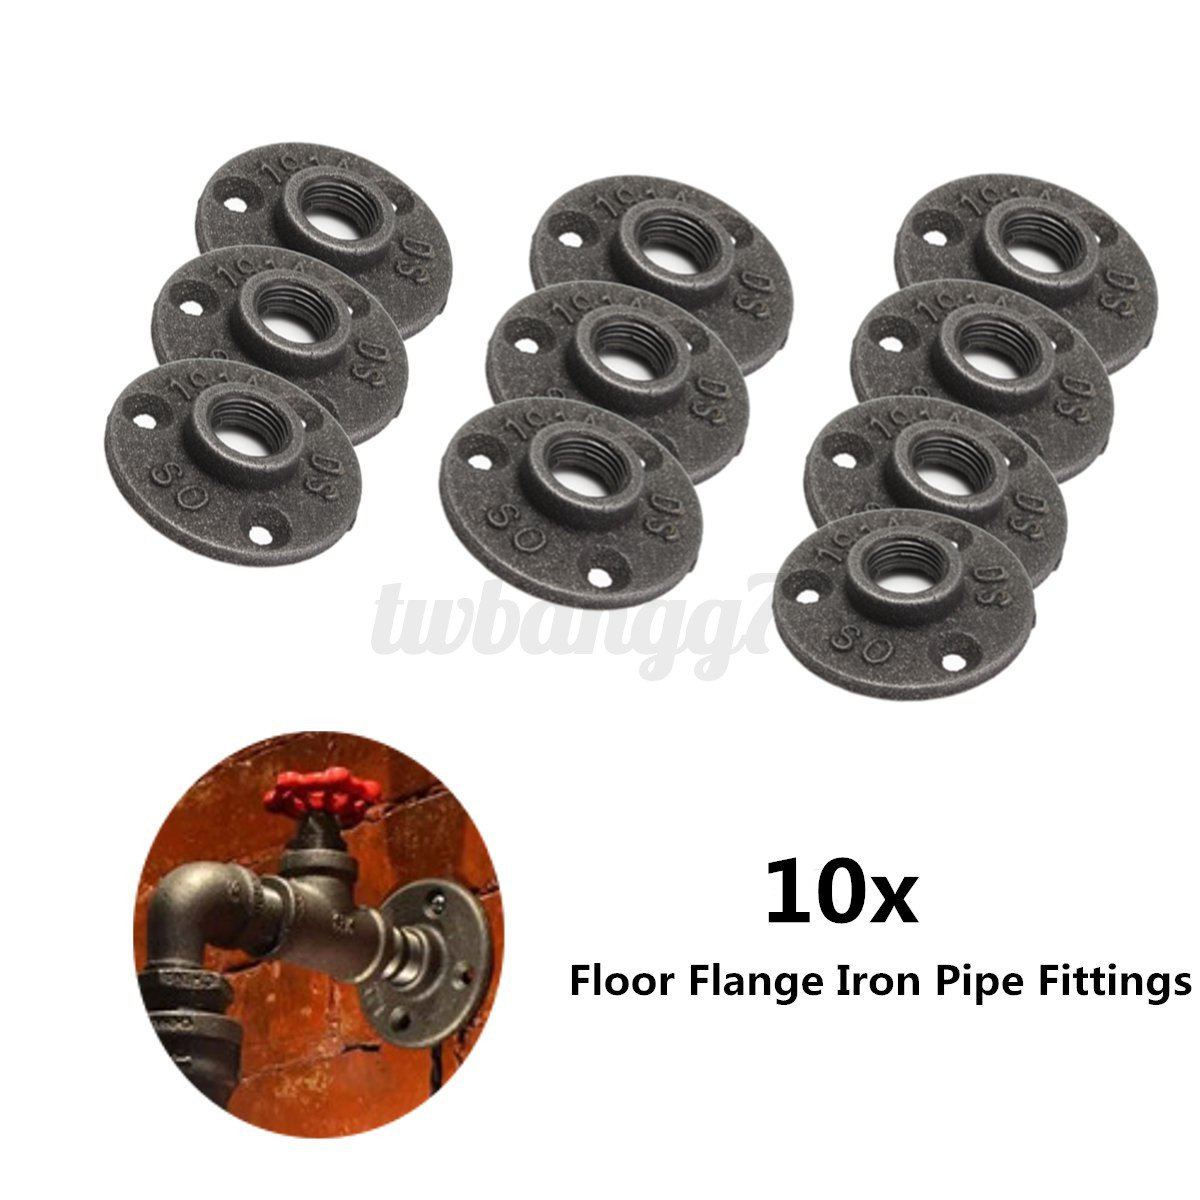 Black malleable cast iron pipe fittings floor